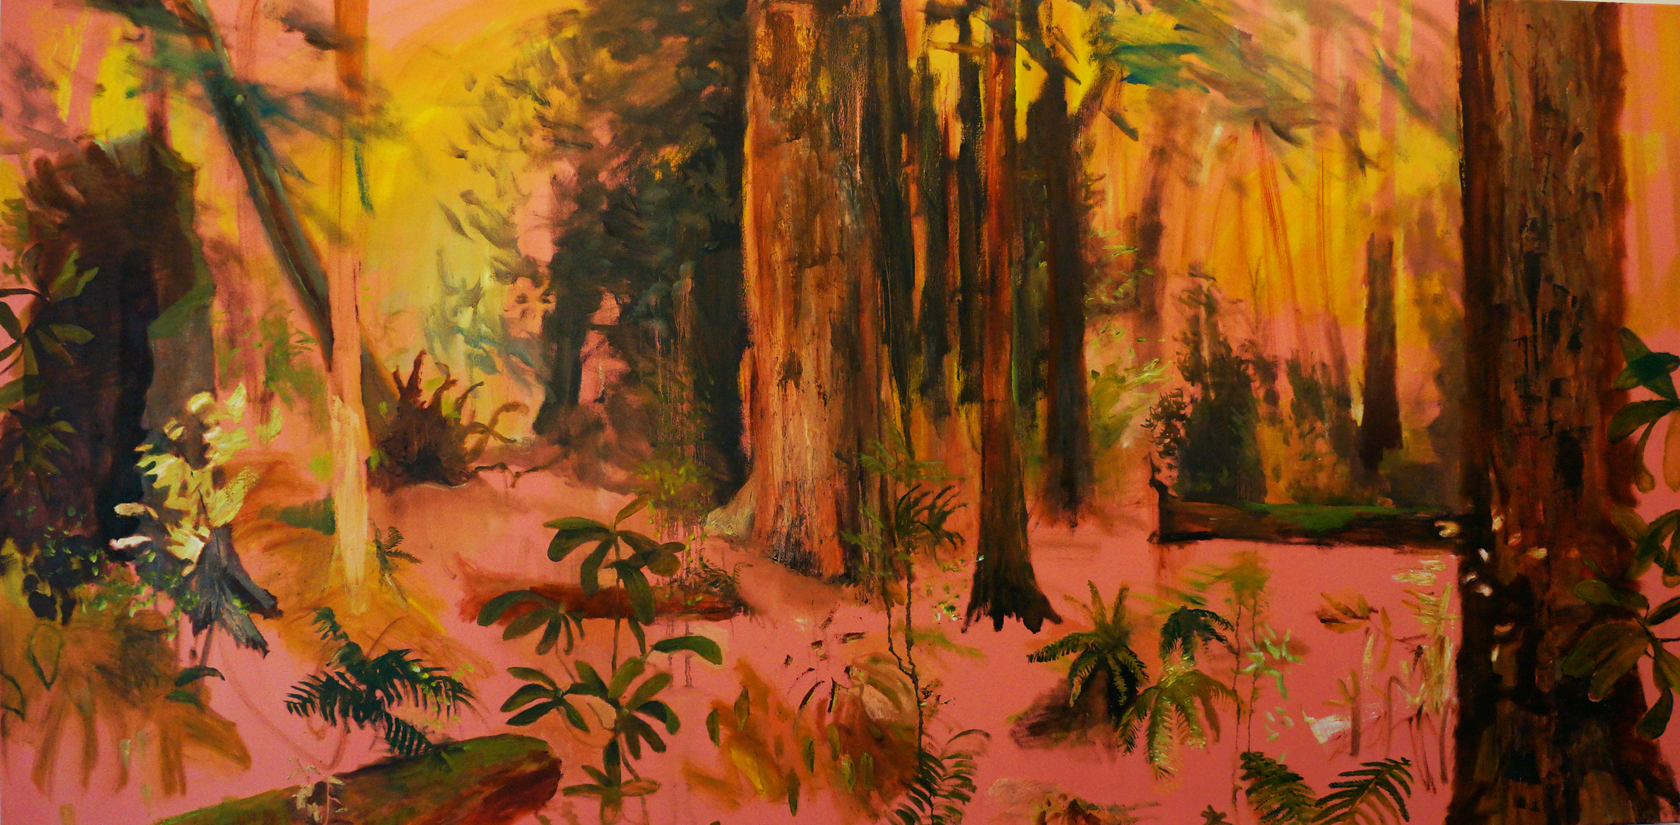 2106 Redwoods with Fires Up North John DeFeo Famous Landscape Abstract Painting Artist